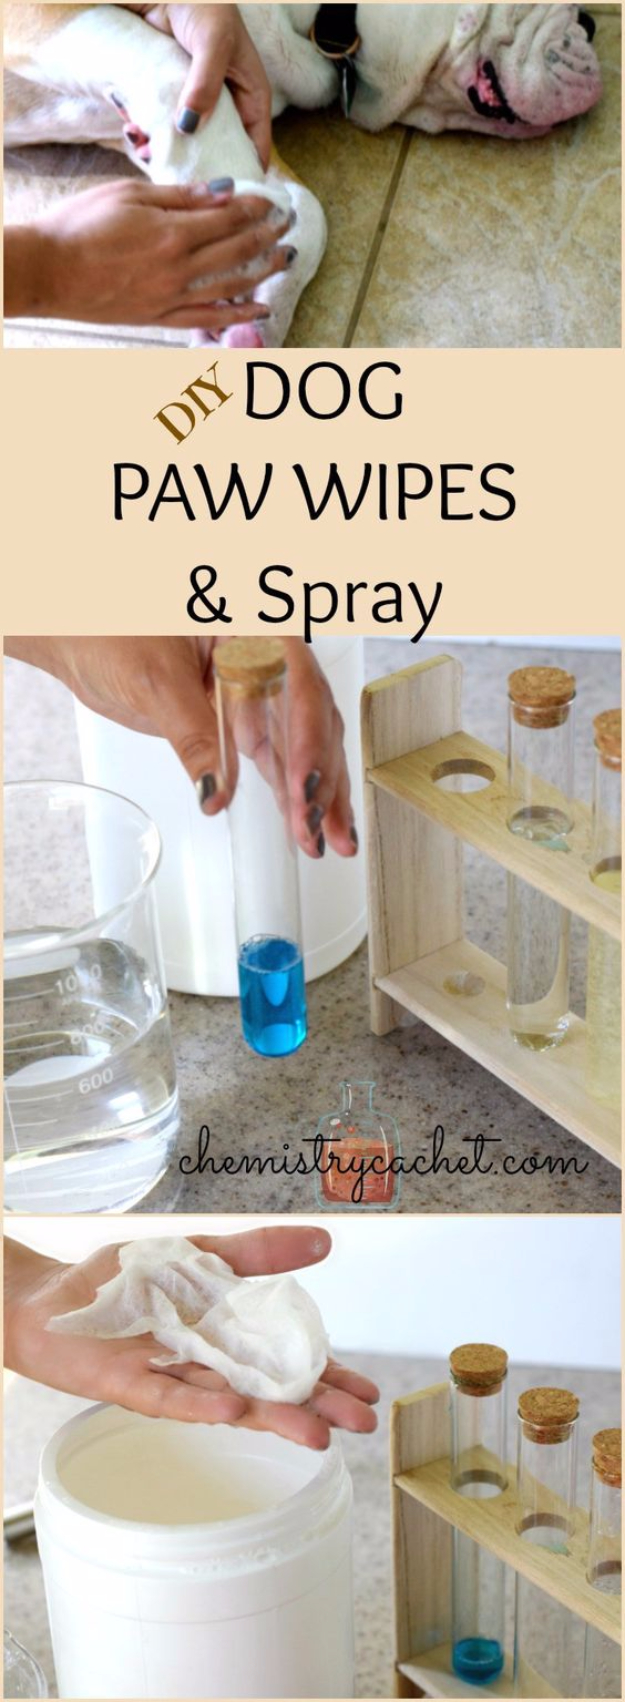 DIY Dog Hacks - DIY Dog Paw Wipes And Spray - Training Tips, Ideas for Dog Beds and Toys, Homemade Remedies for Fleas and Scratching - Do It Yourself Dog Treat Recips, Food and Gear for Your Pet #dogs #diy #crafts